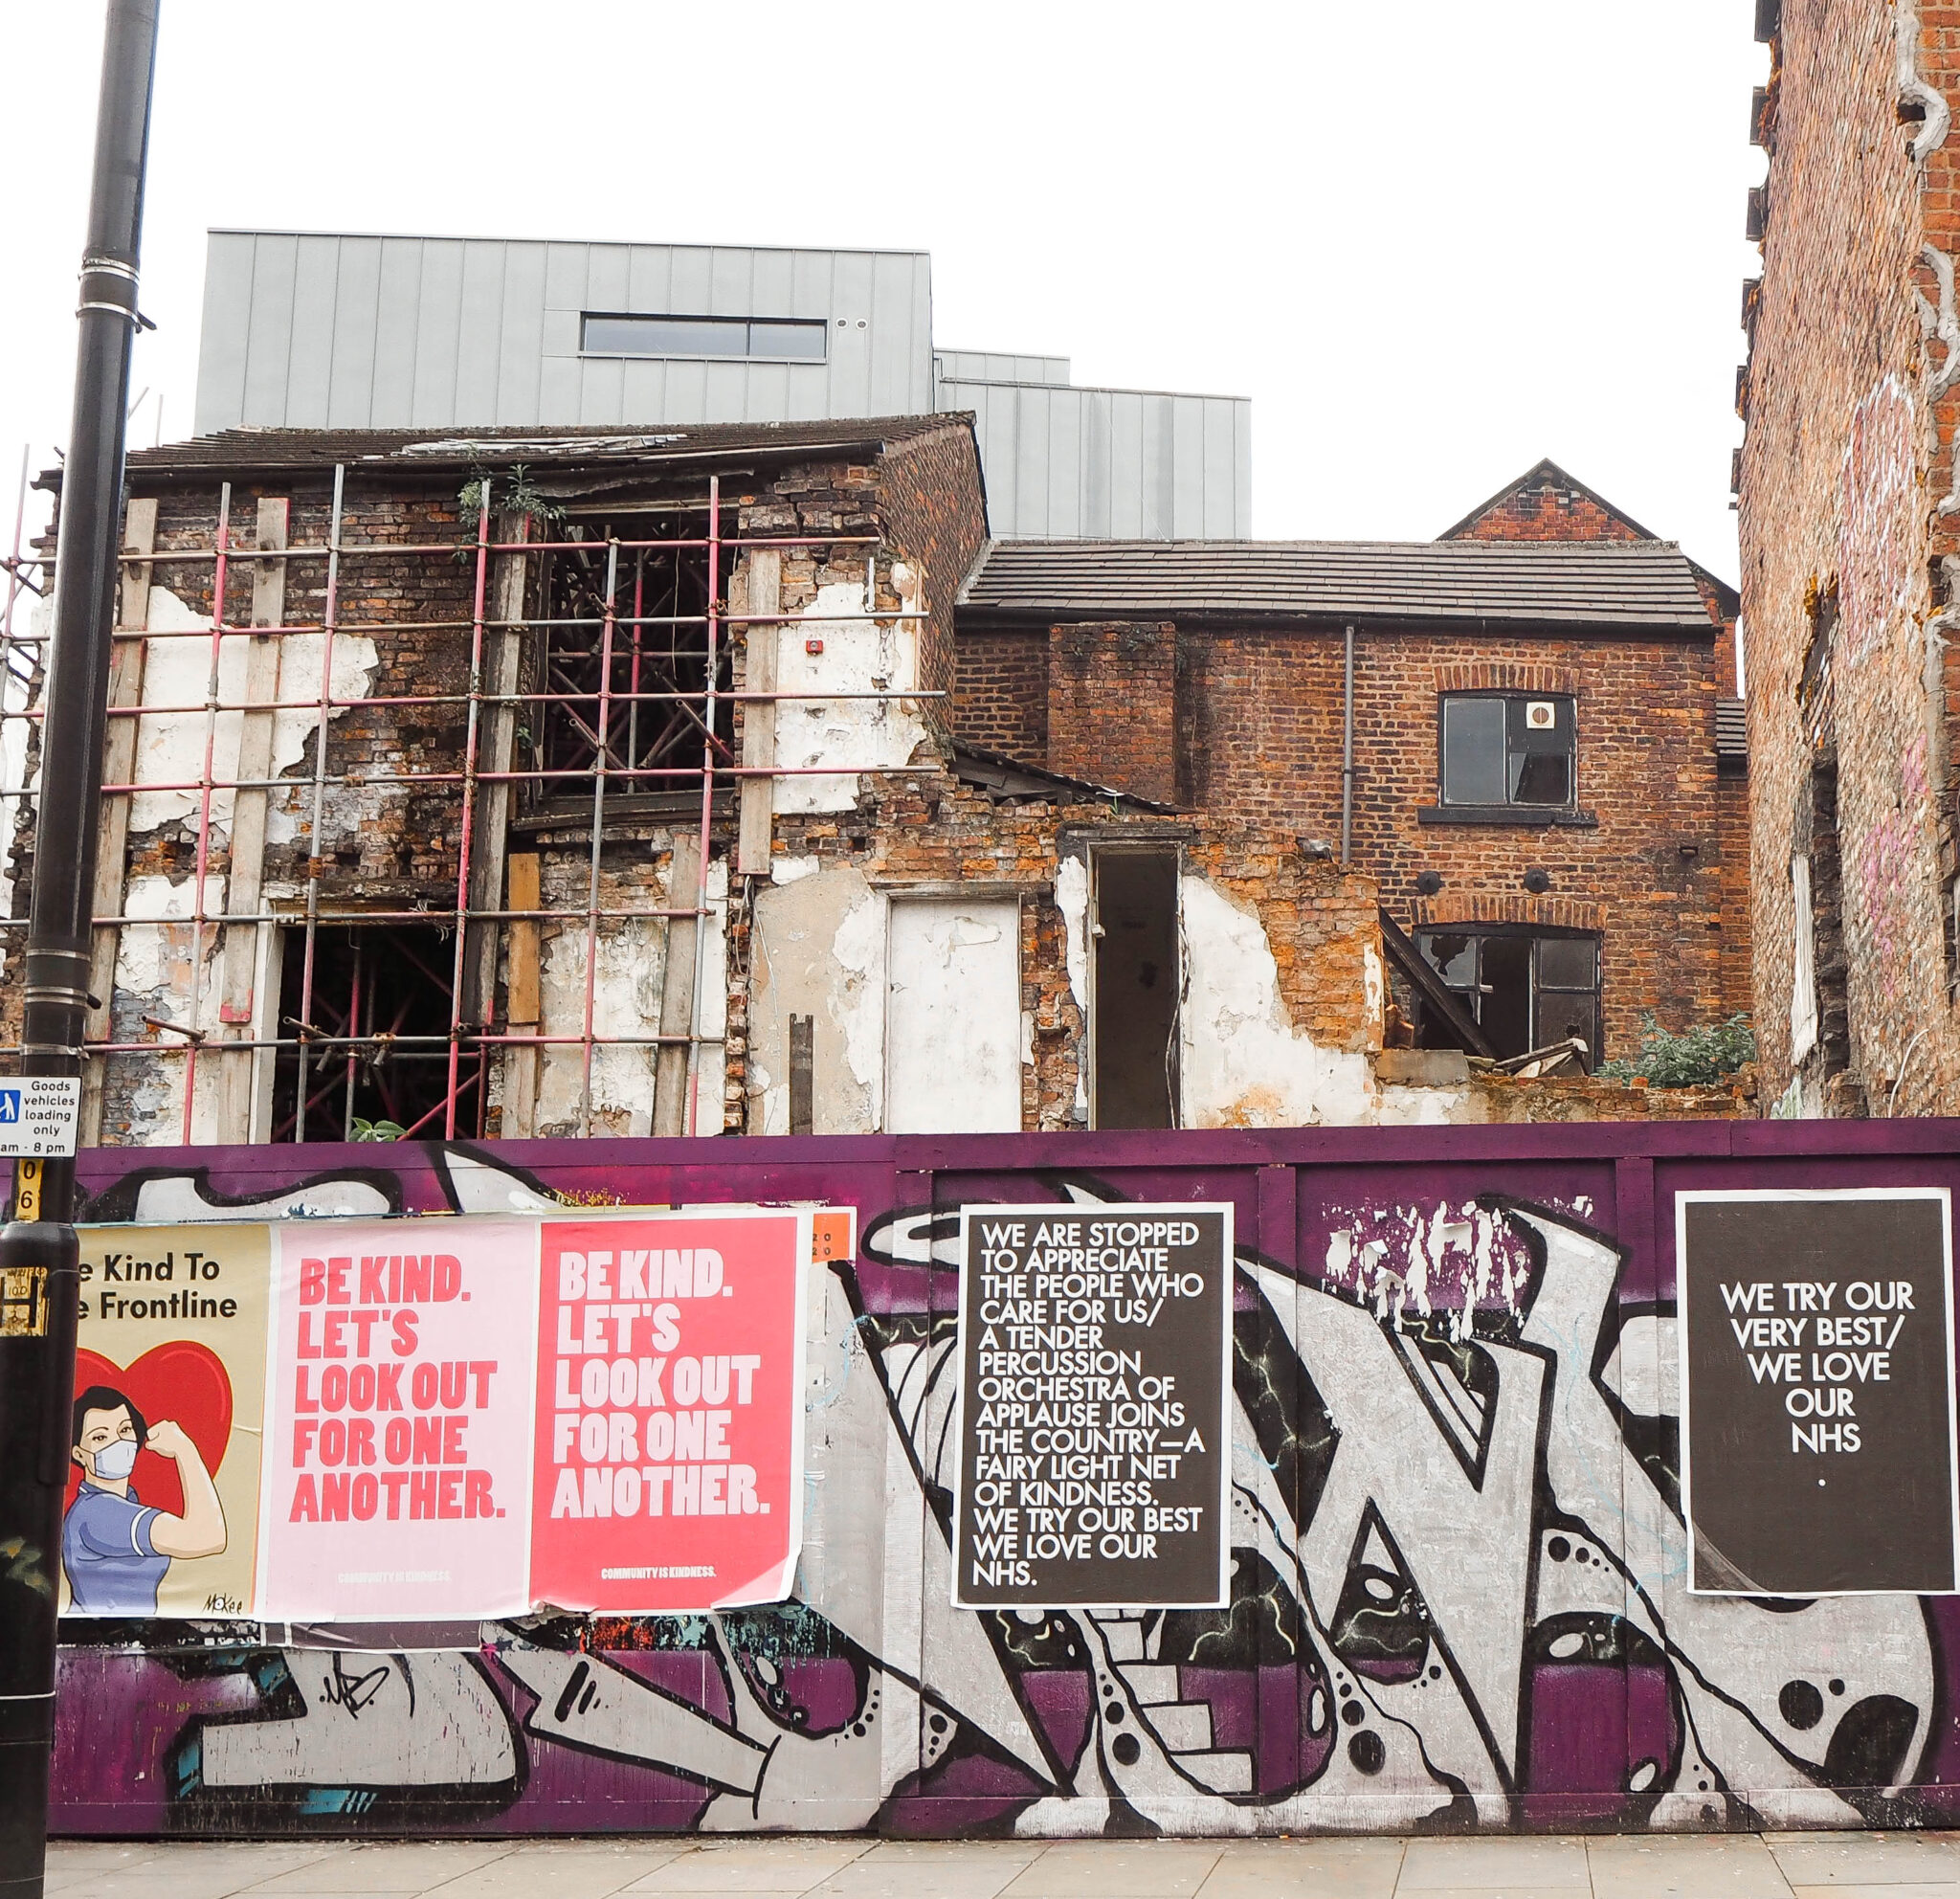 Northern quarter Manchester lockdown posters